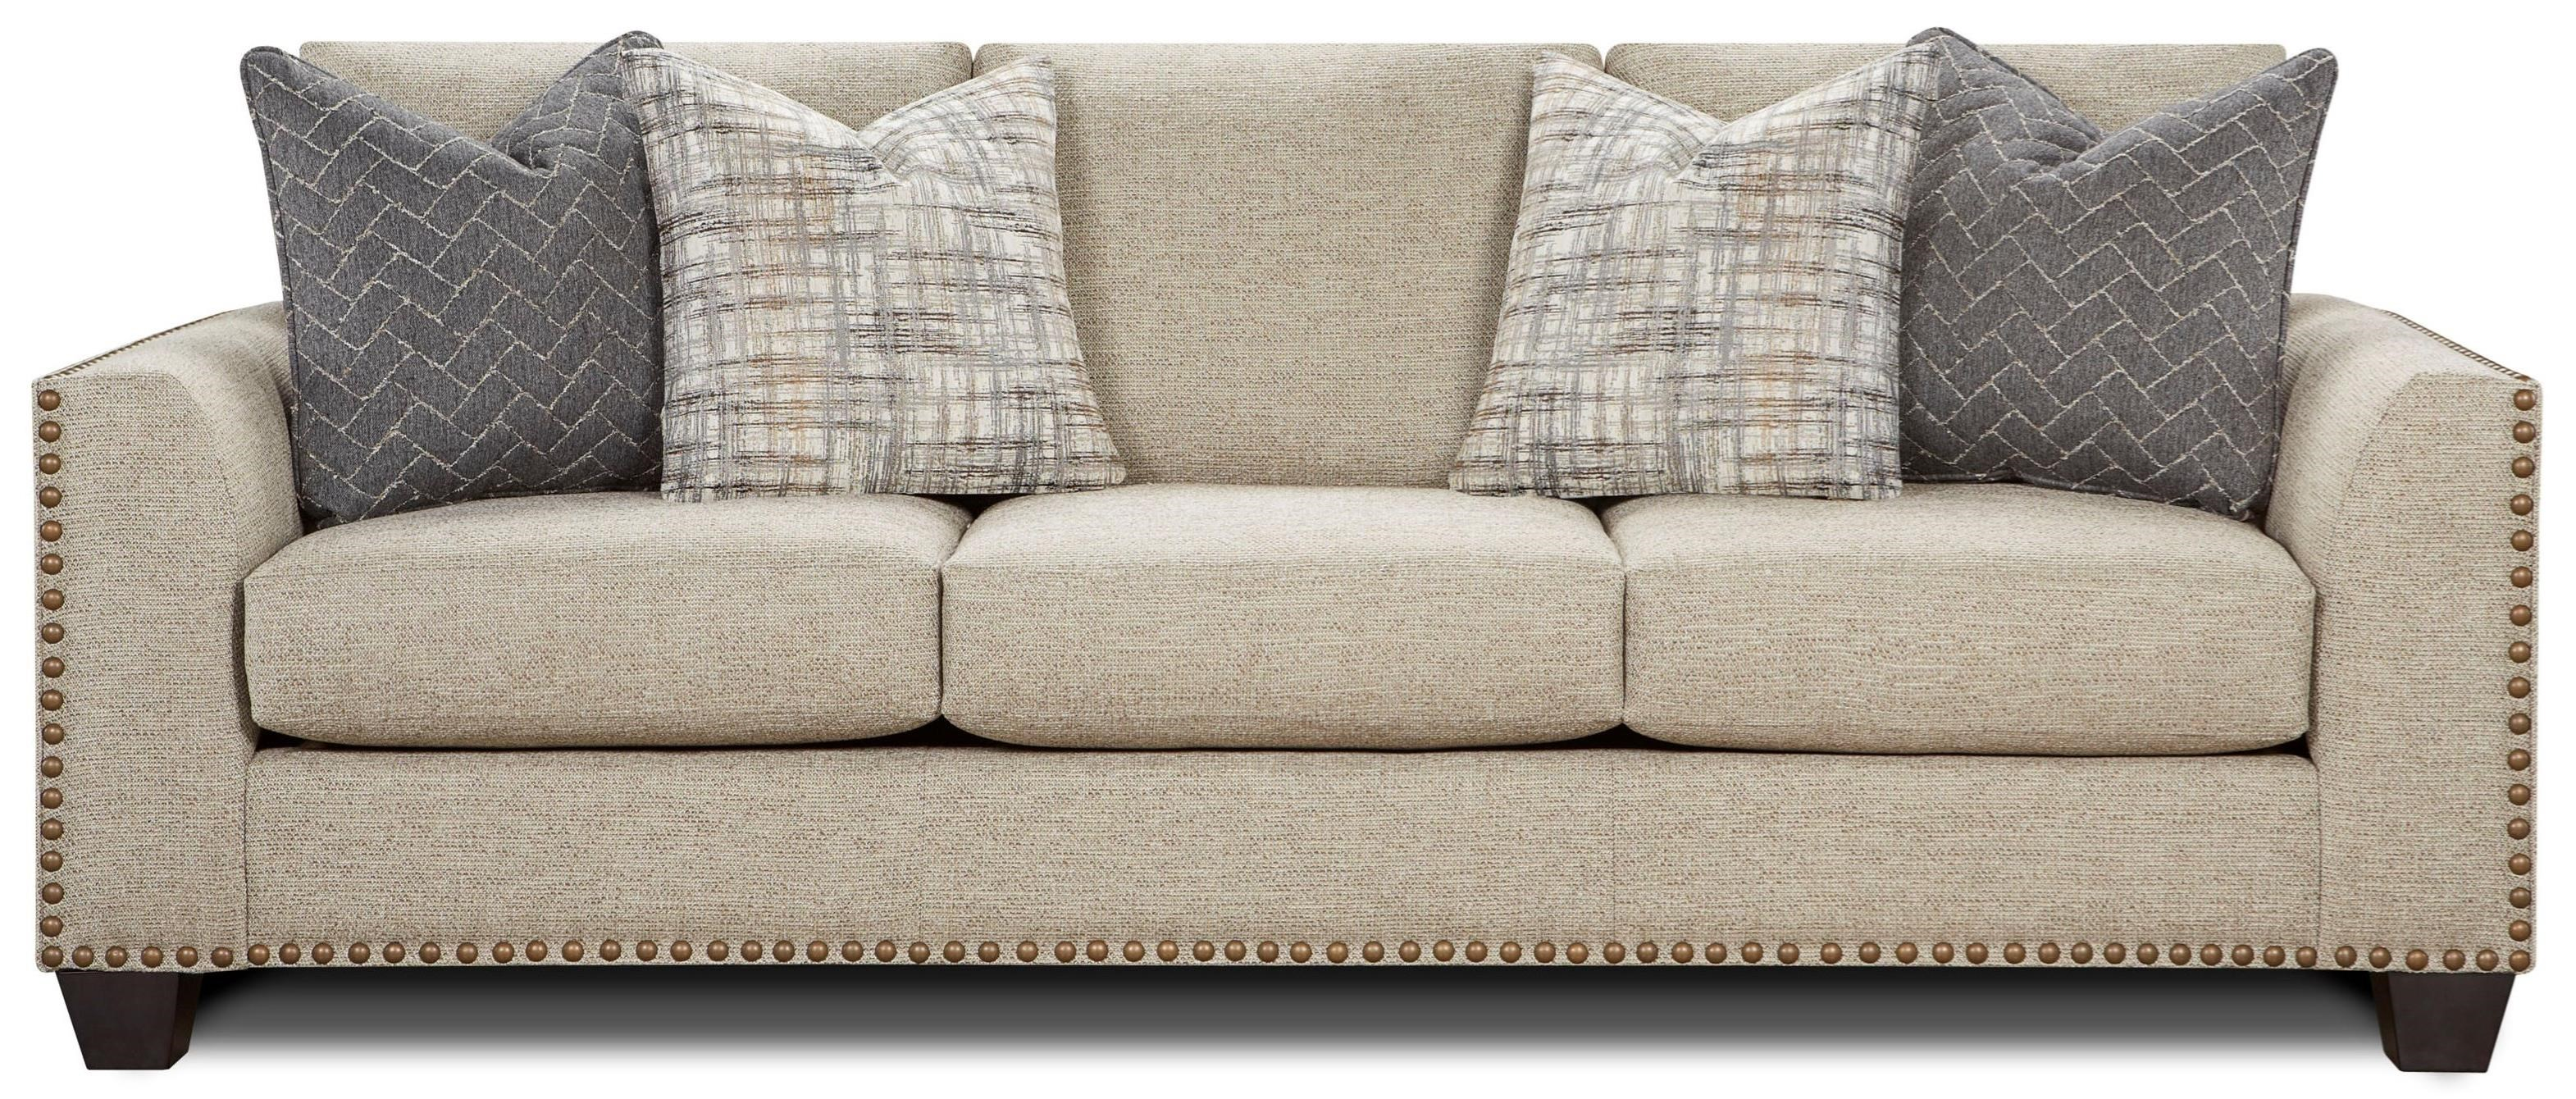 Contemporary Couch 1430 Contemporary Sofa With Nailhead Trim By Fusion Furniture At Lindy S Furniture Company